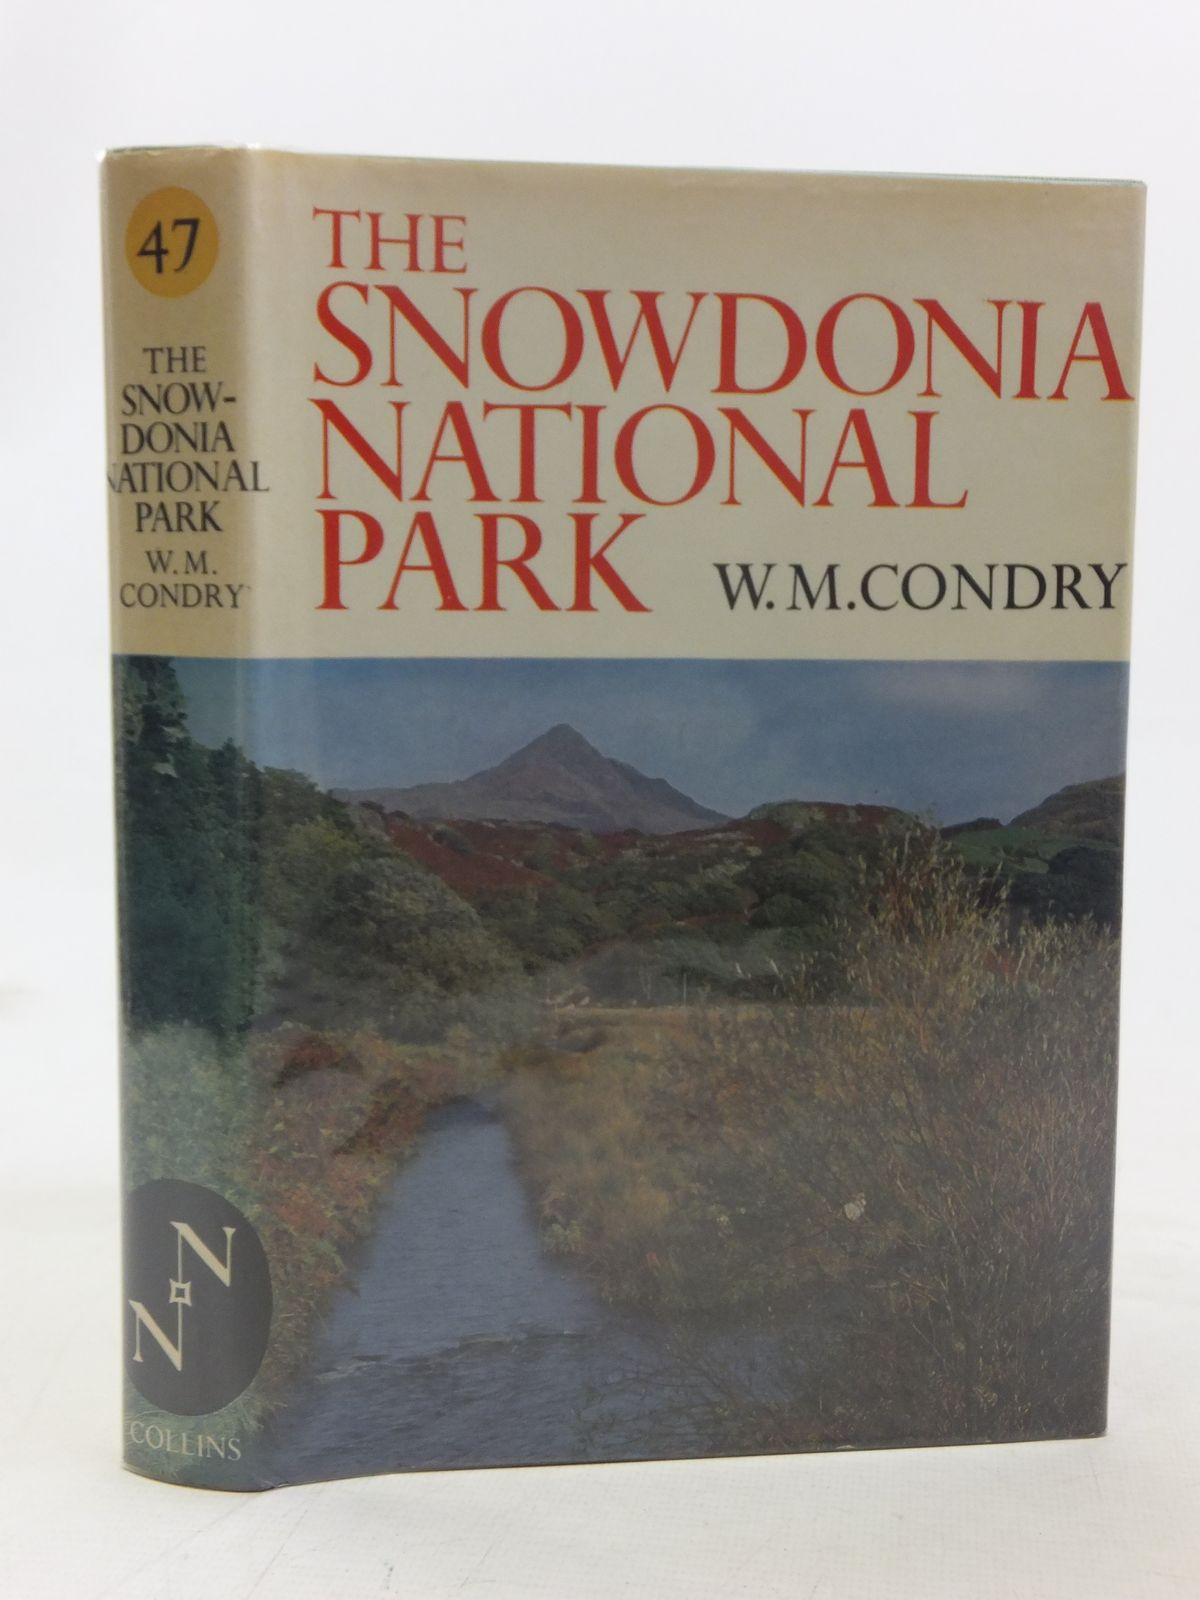 Photo of THE SNOWDONIA NATIONAL PARK (NN 47) written by Condry, William M. published by Collins (STOCK CODE: 1607019)  for sale by Stella & Rose's Books